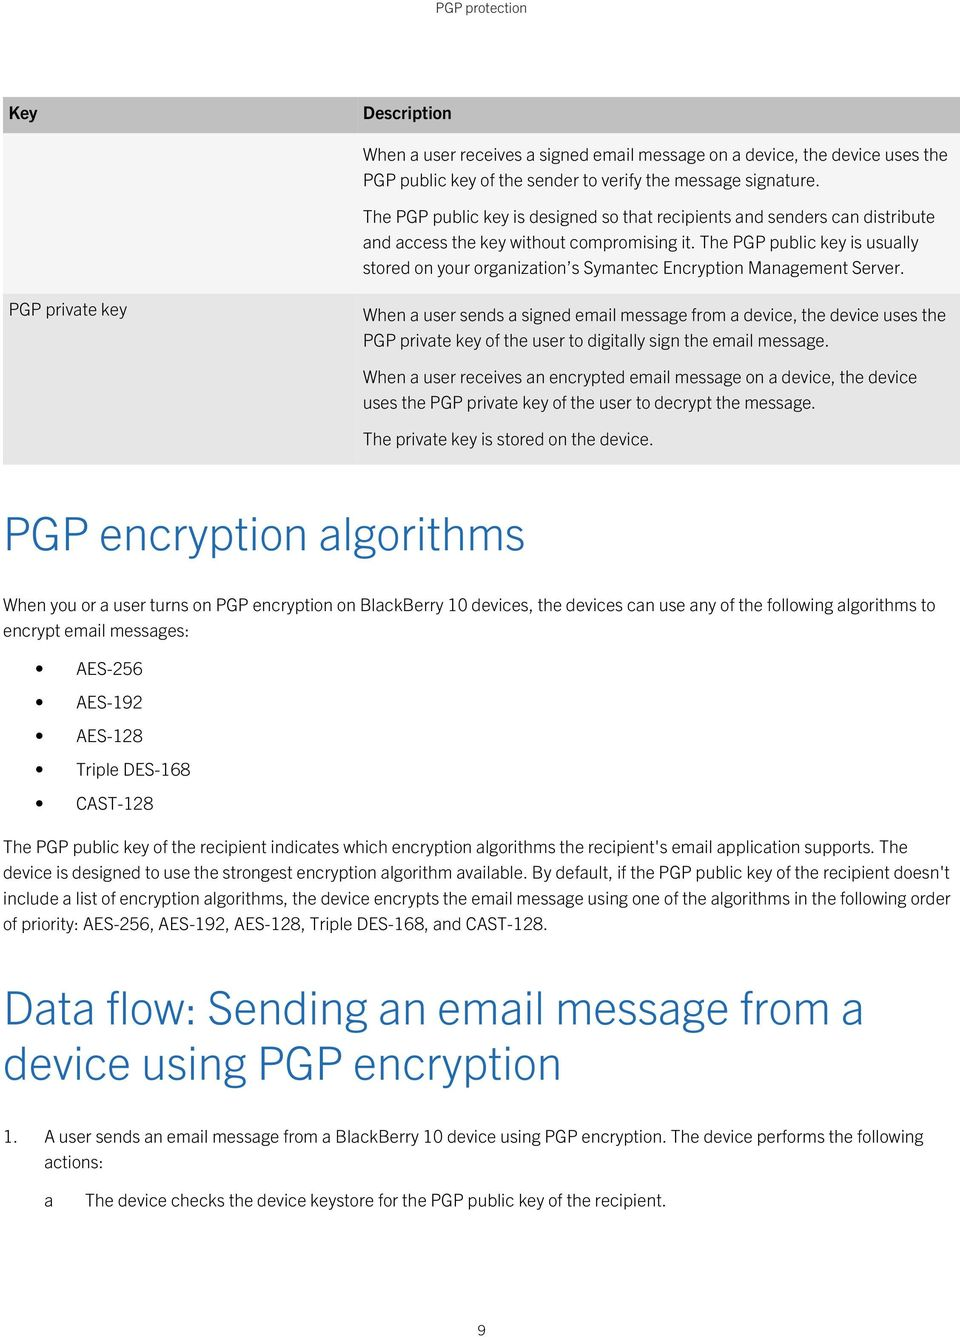 The PGP public key is usually stored on your organization s Symantec Encryption Management Server.